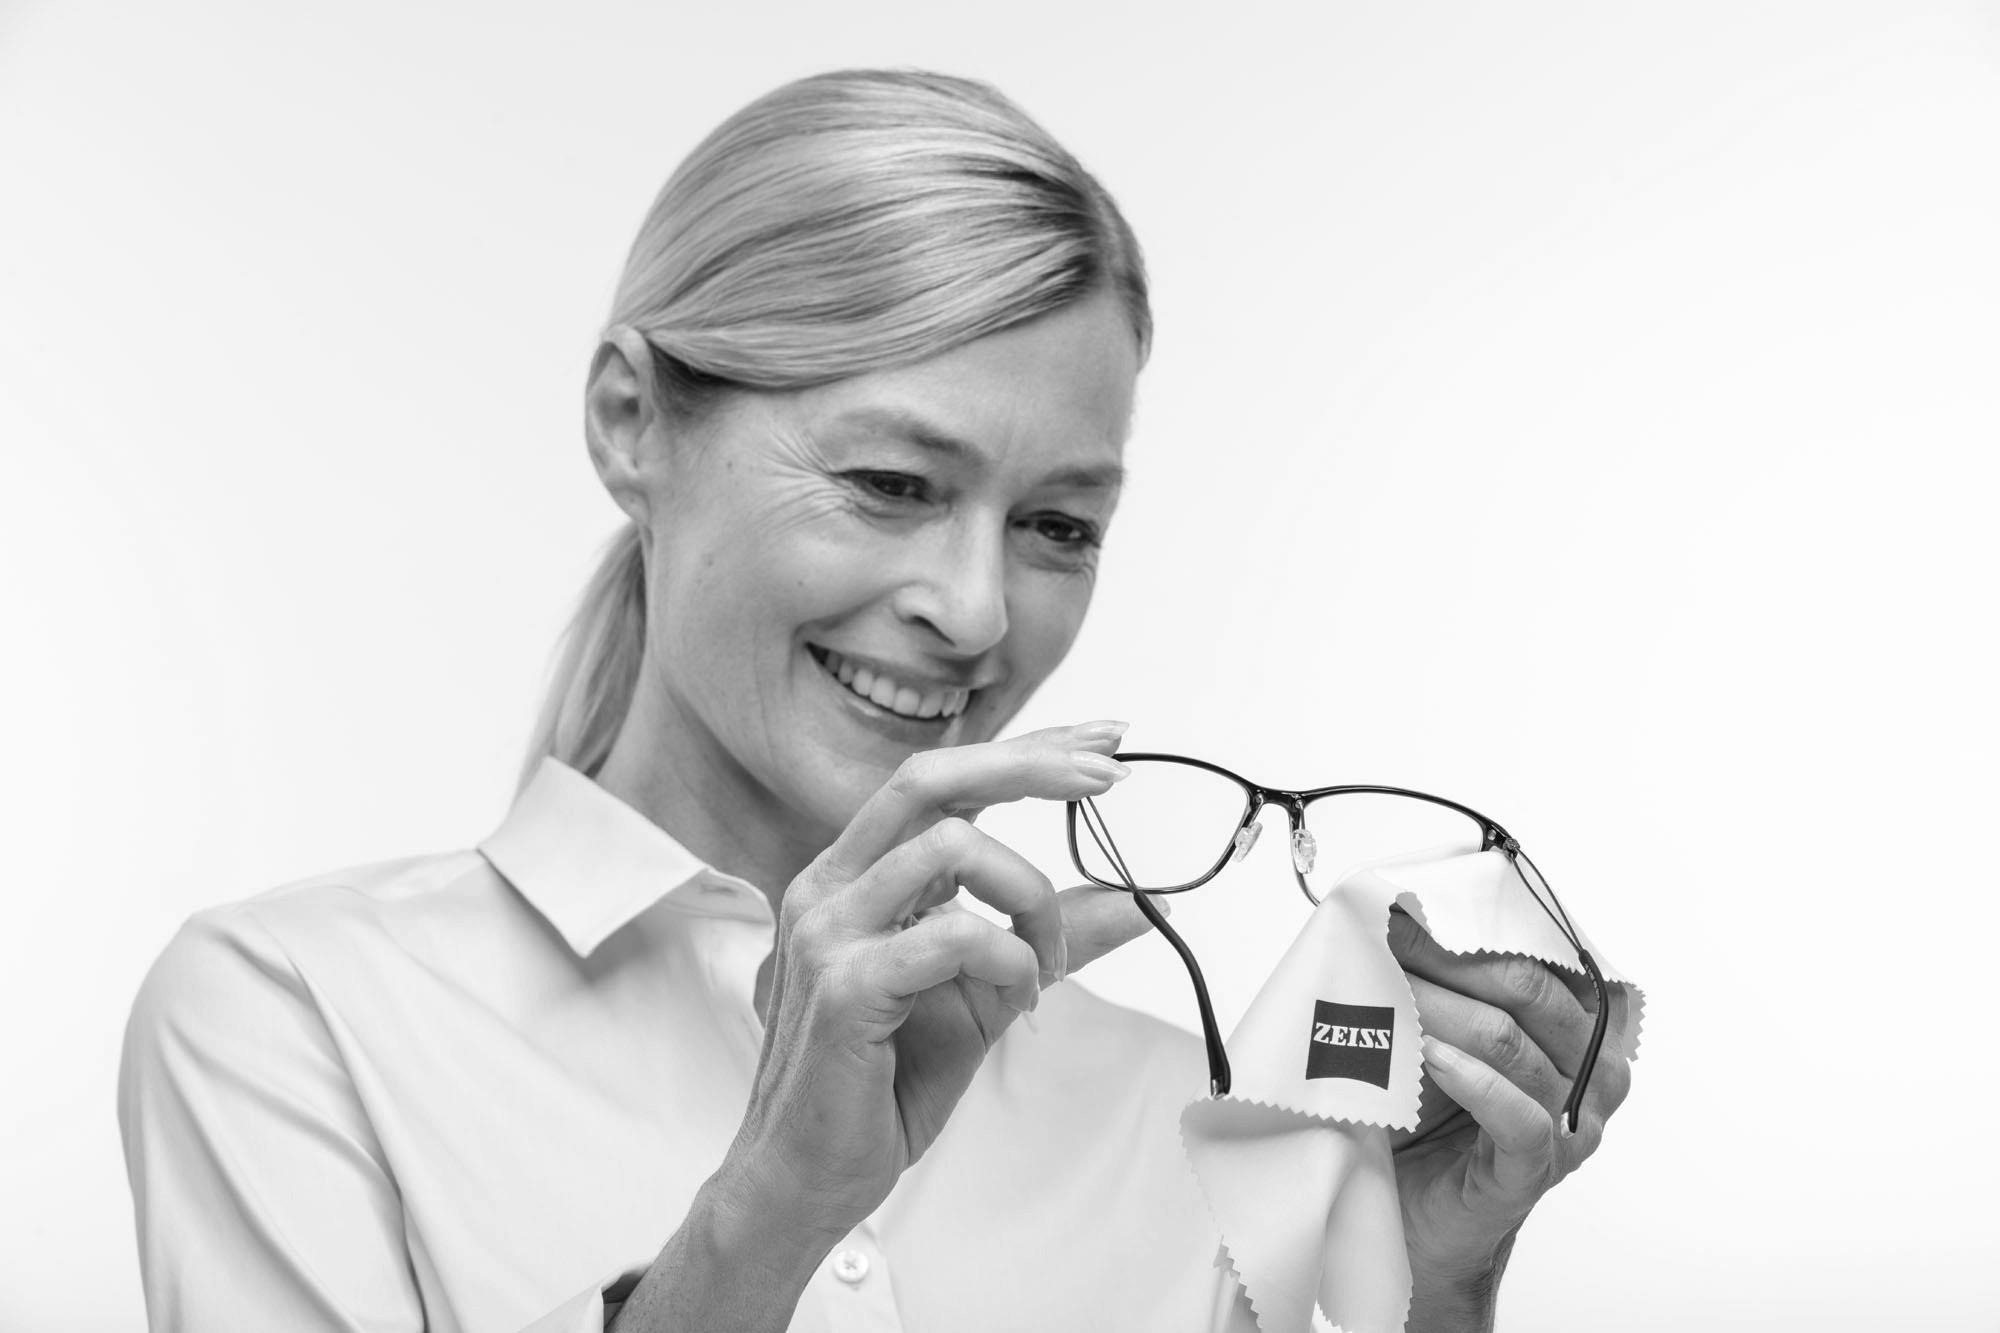 ZEISS Lens cleaning solution for glasses | ZEISS South Africa